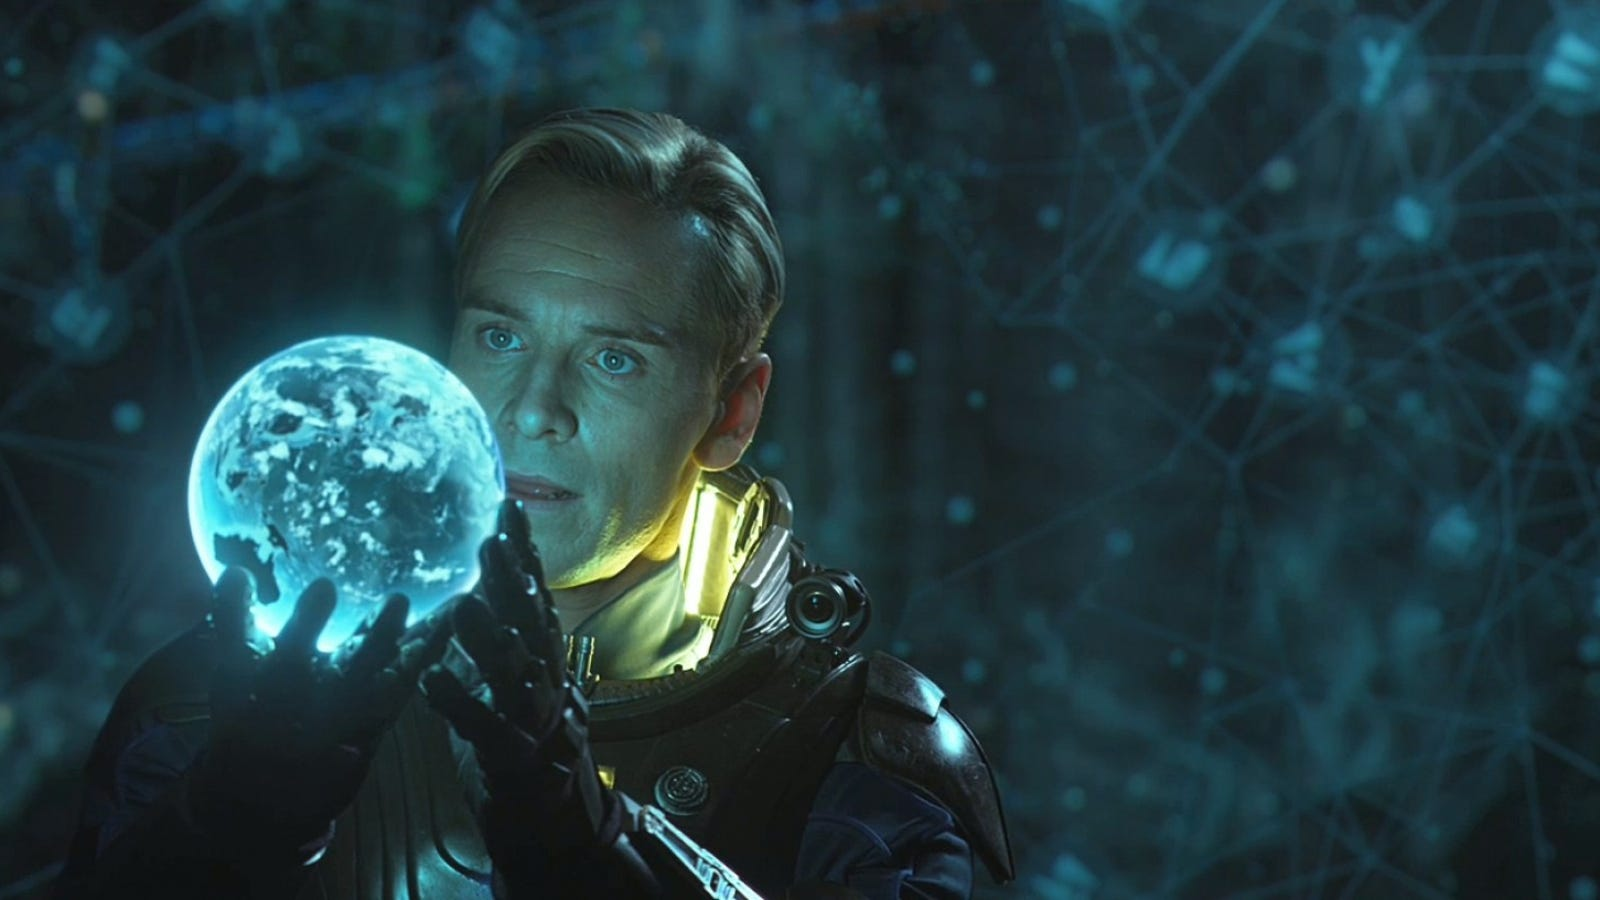 Blogue Alien S Android S: How Close To Reality Are The Androids In Alien And Prometheus?